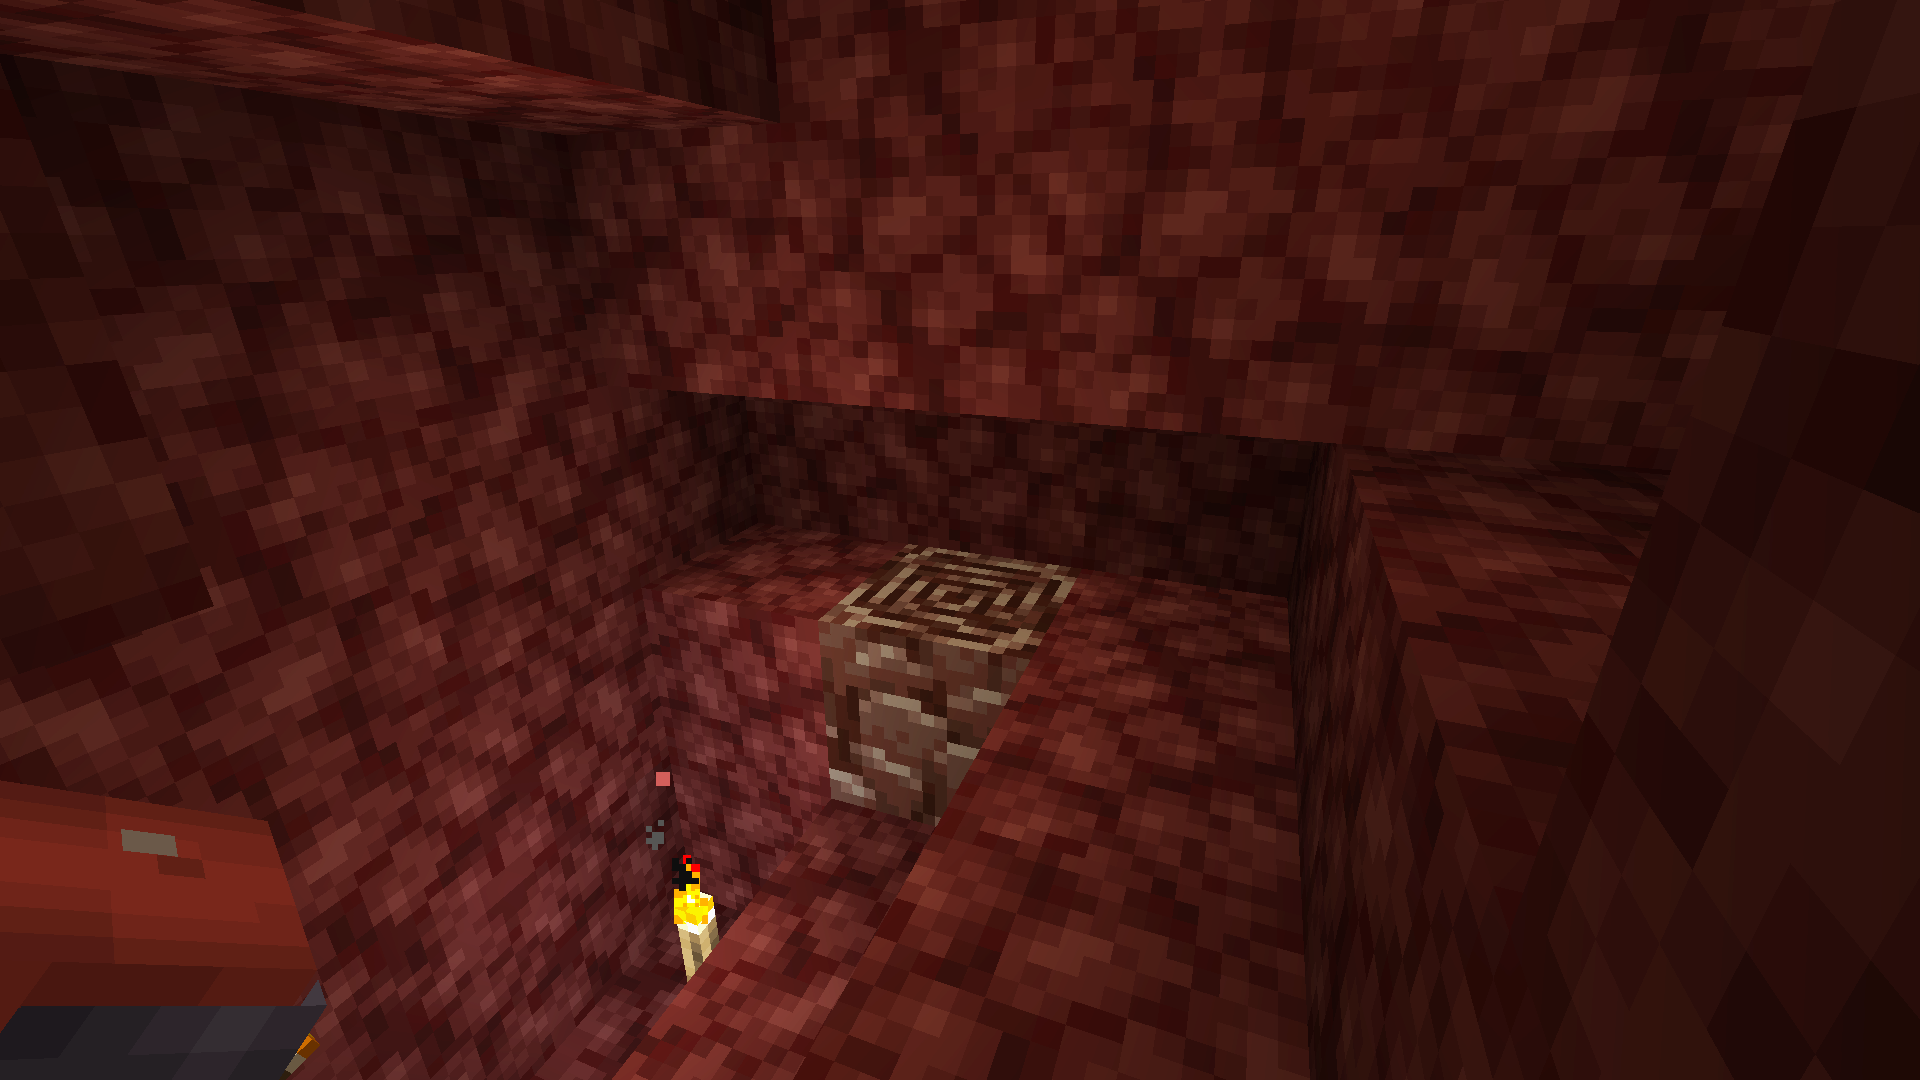 A Minecraft screenshot showing a swirly brown block surrounded by dark red blocks